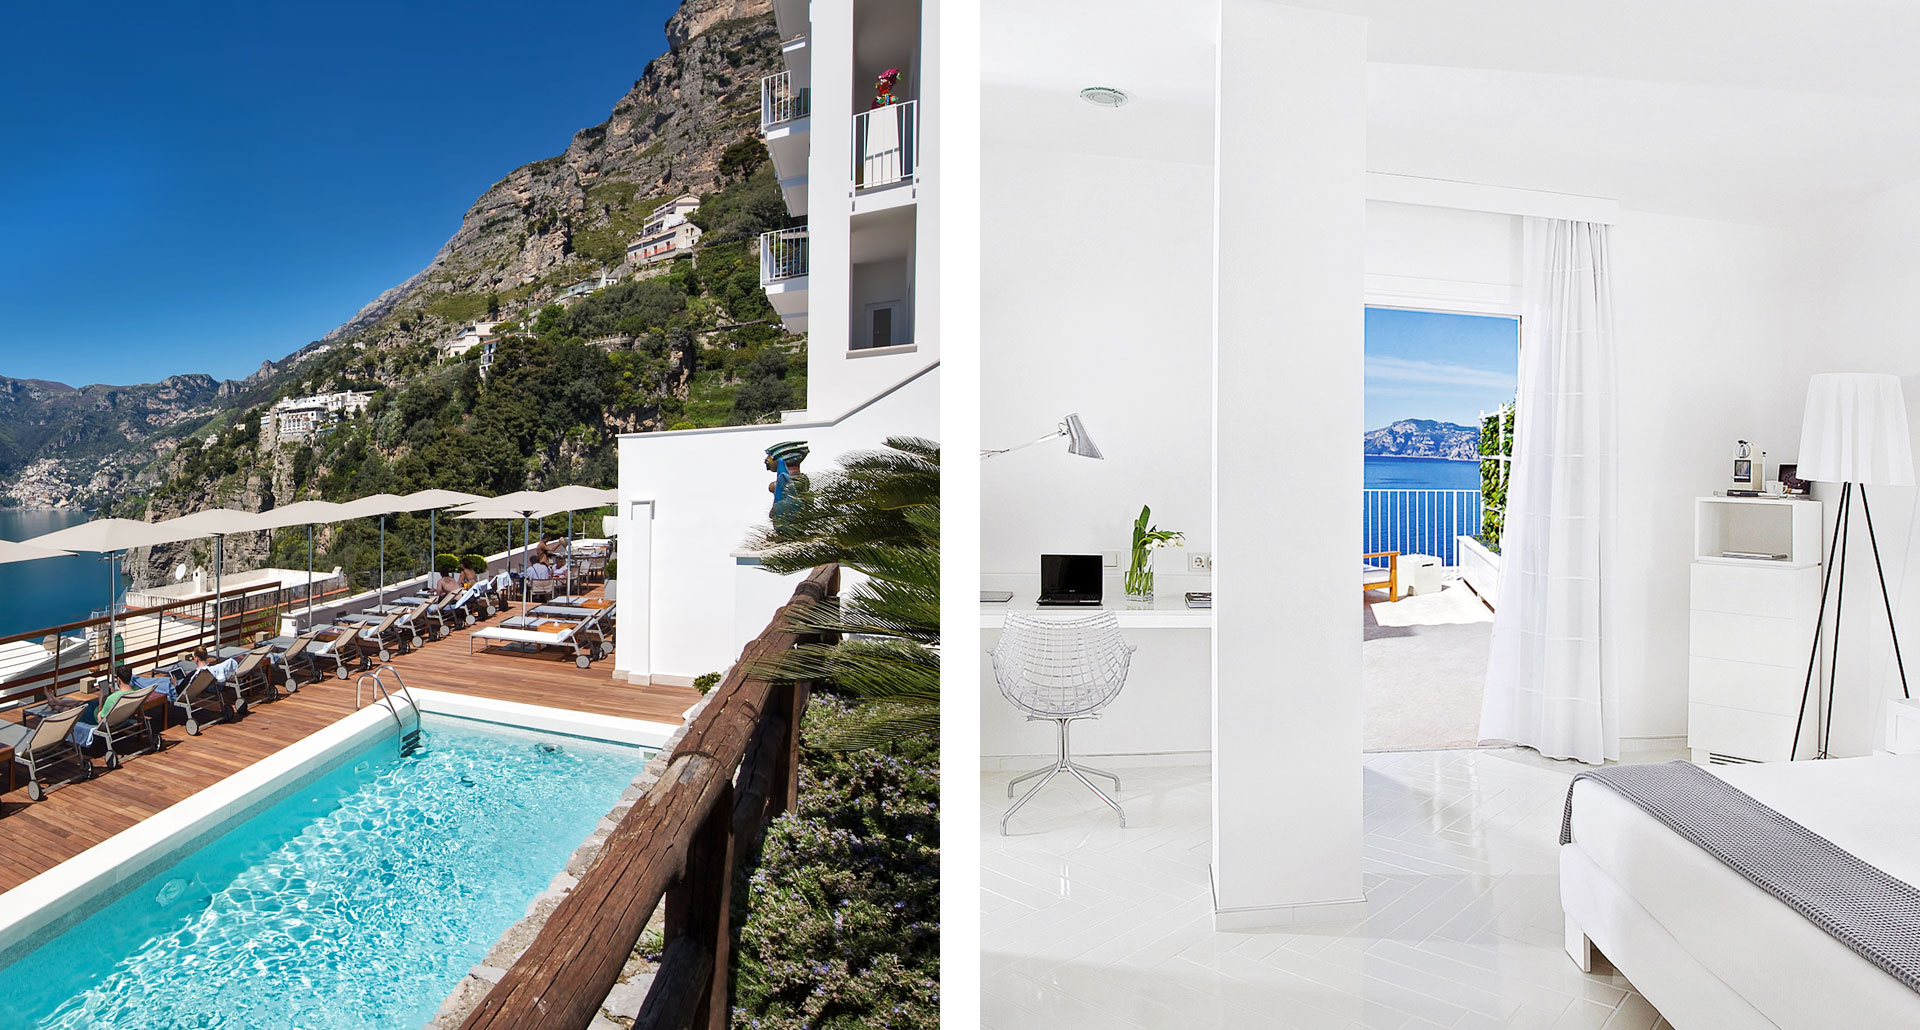 Casa Angelina Lifestyle Hotel - boutique hotel in Amalfi Coast